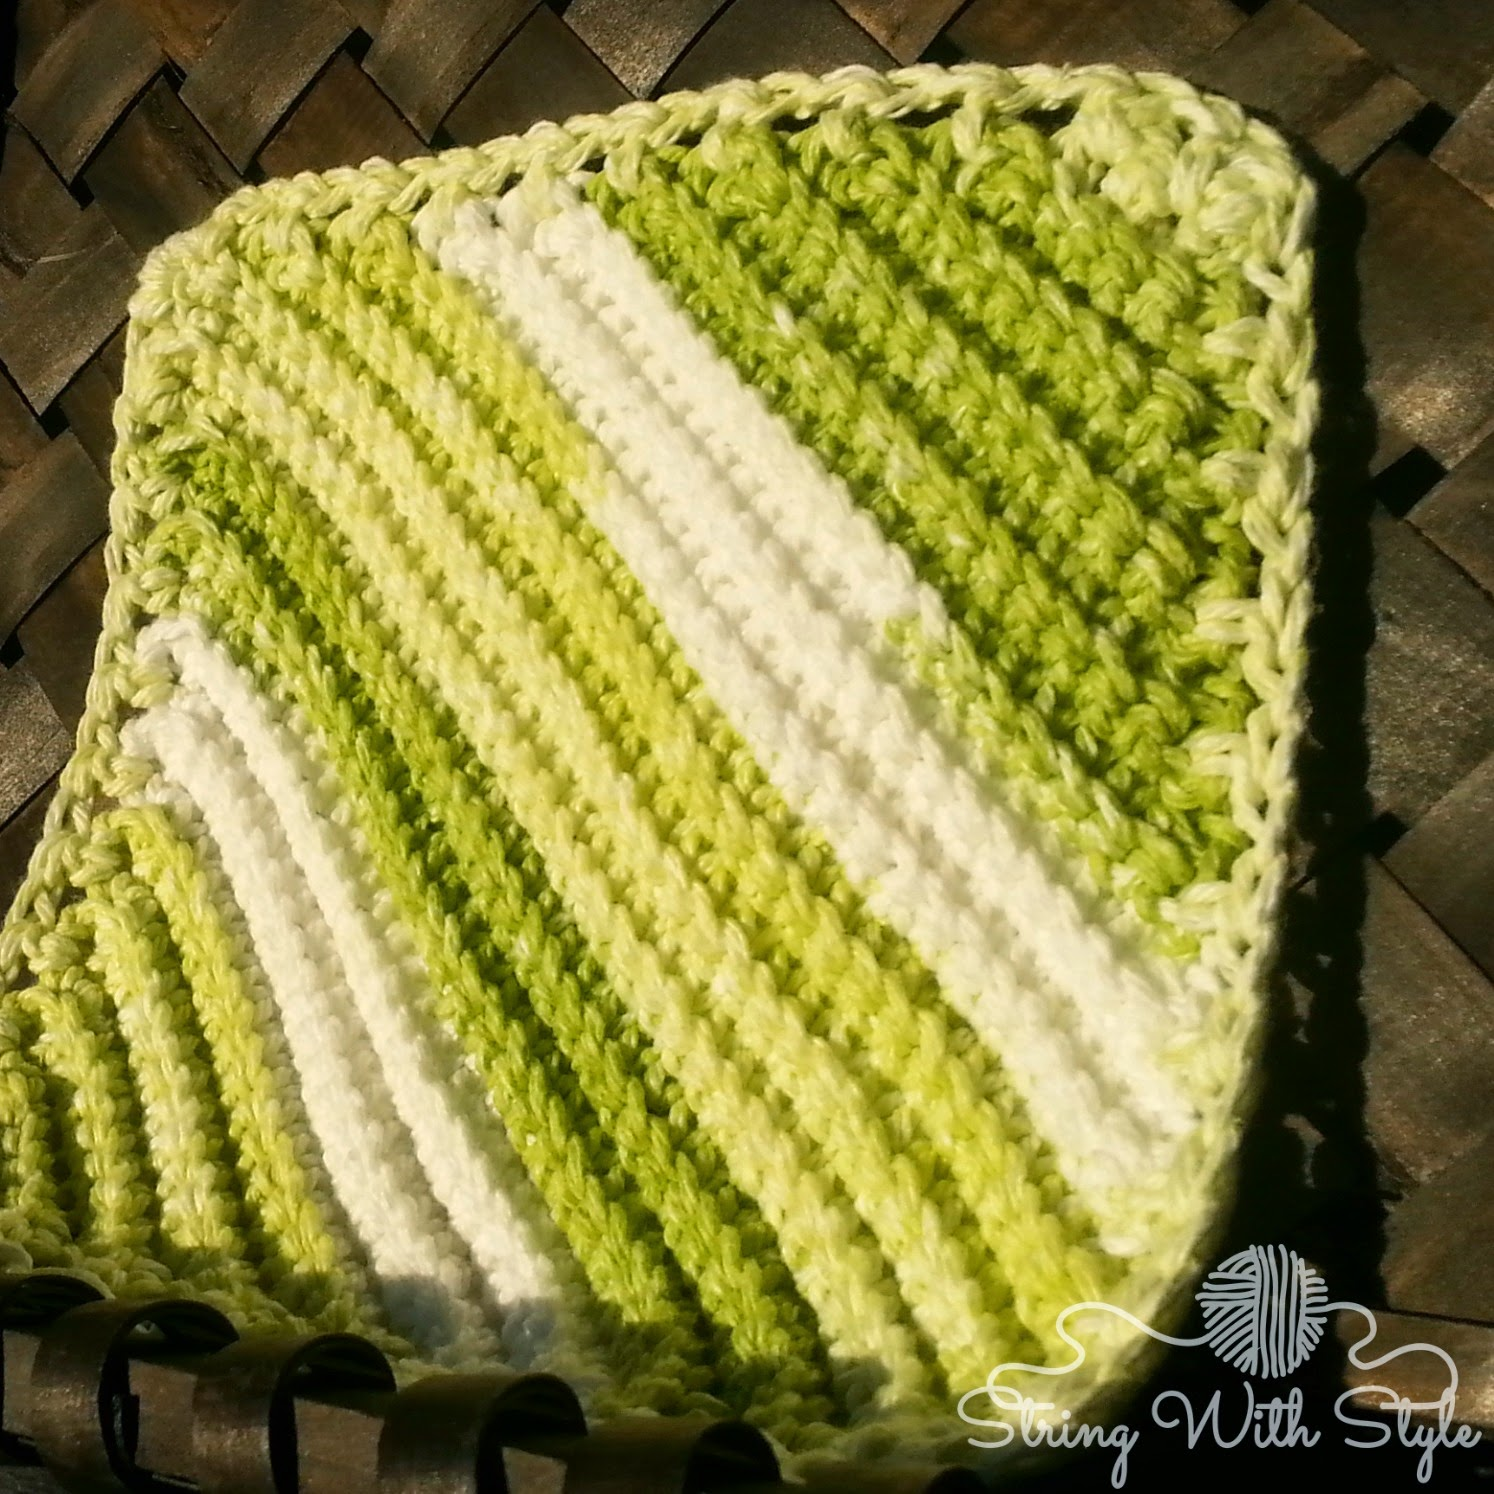 String With Style: Knit Me Knot Dishcloth